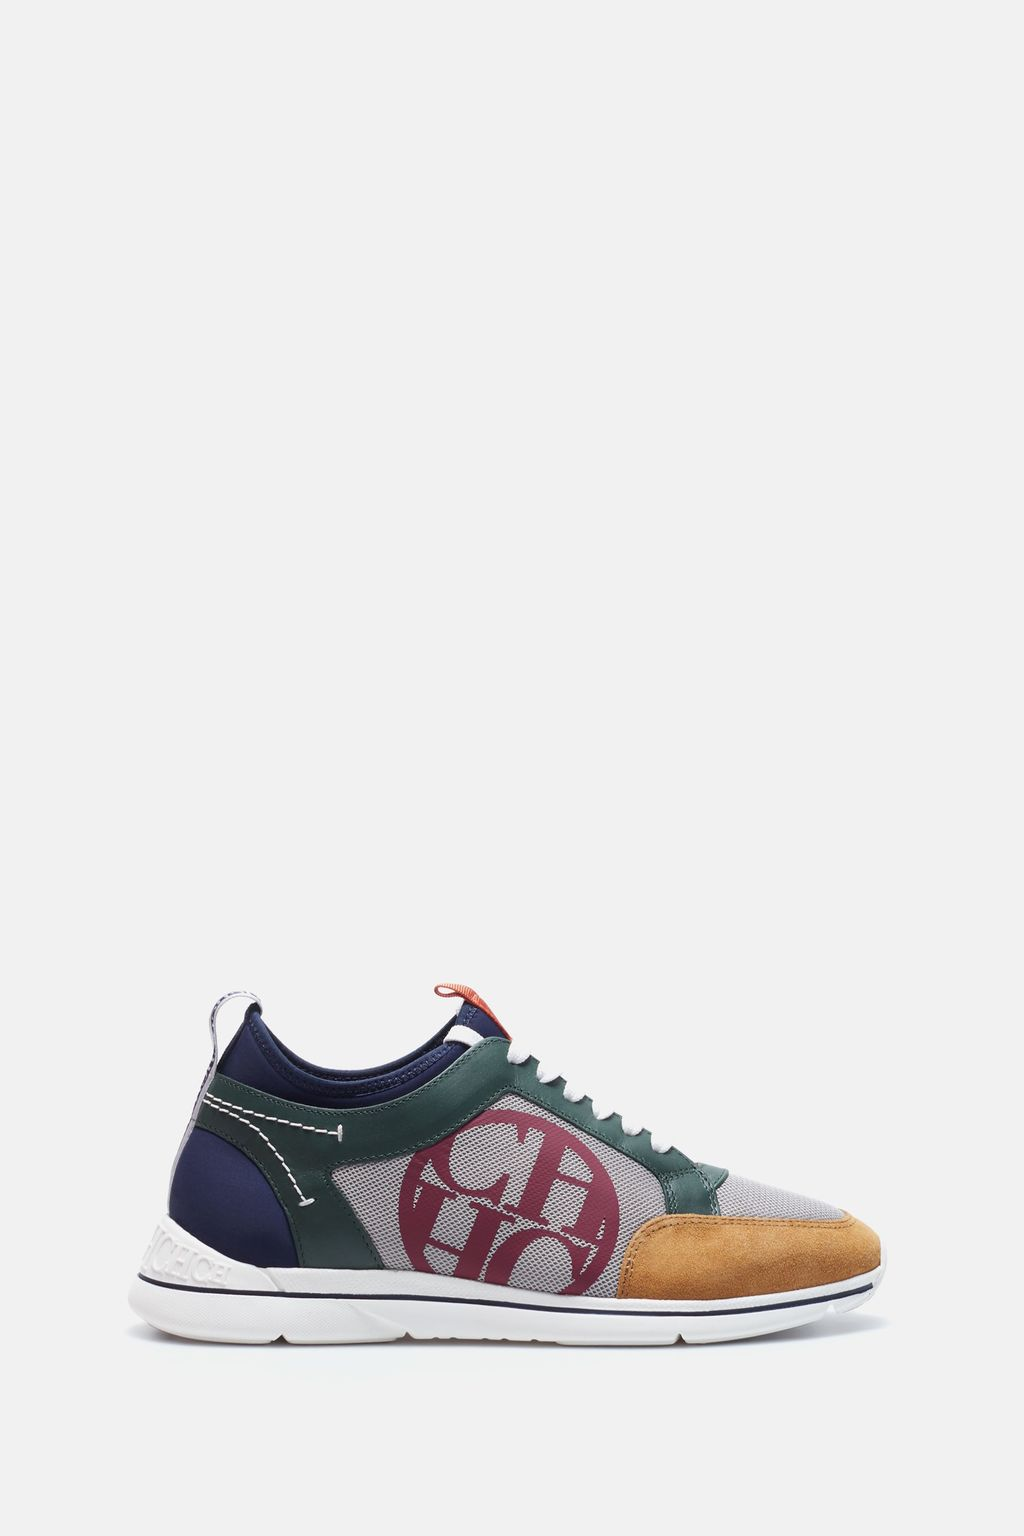 CH Medal Napal leather and neoprene sneakers